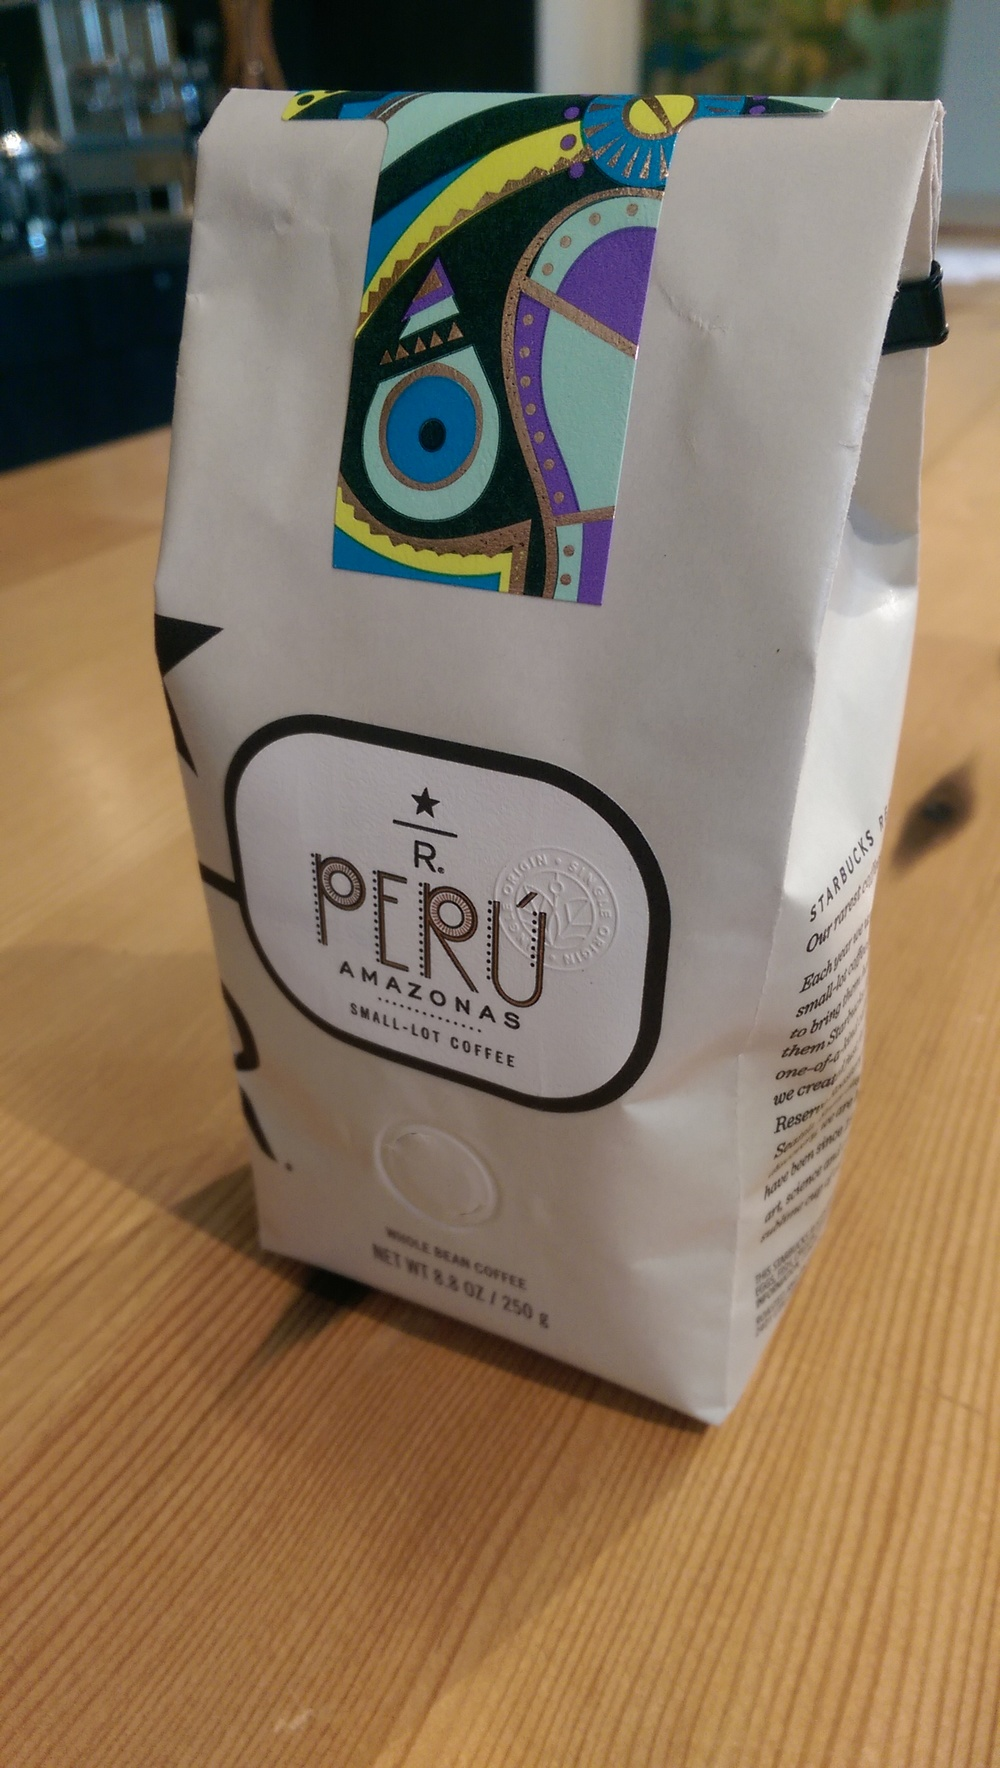 IMAG5272-1 Photo of Peru Amazonas taken at the SSC 2-13-15 - New packaging.jpg